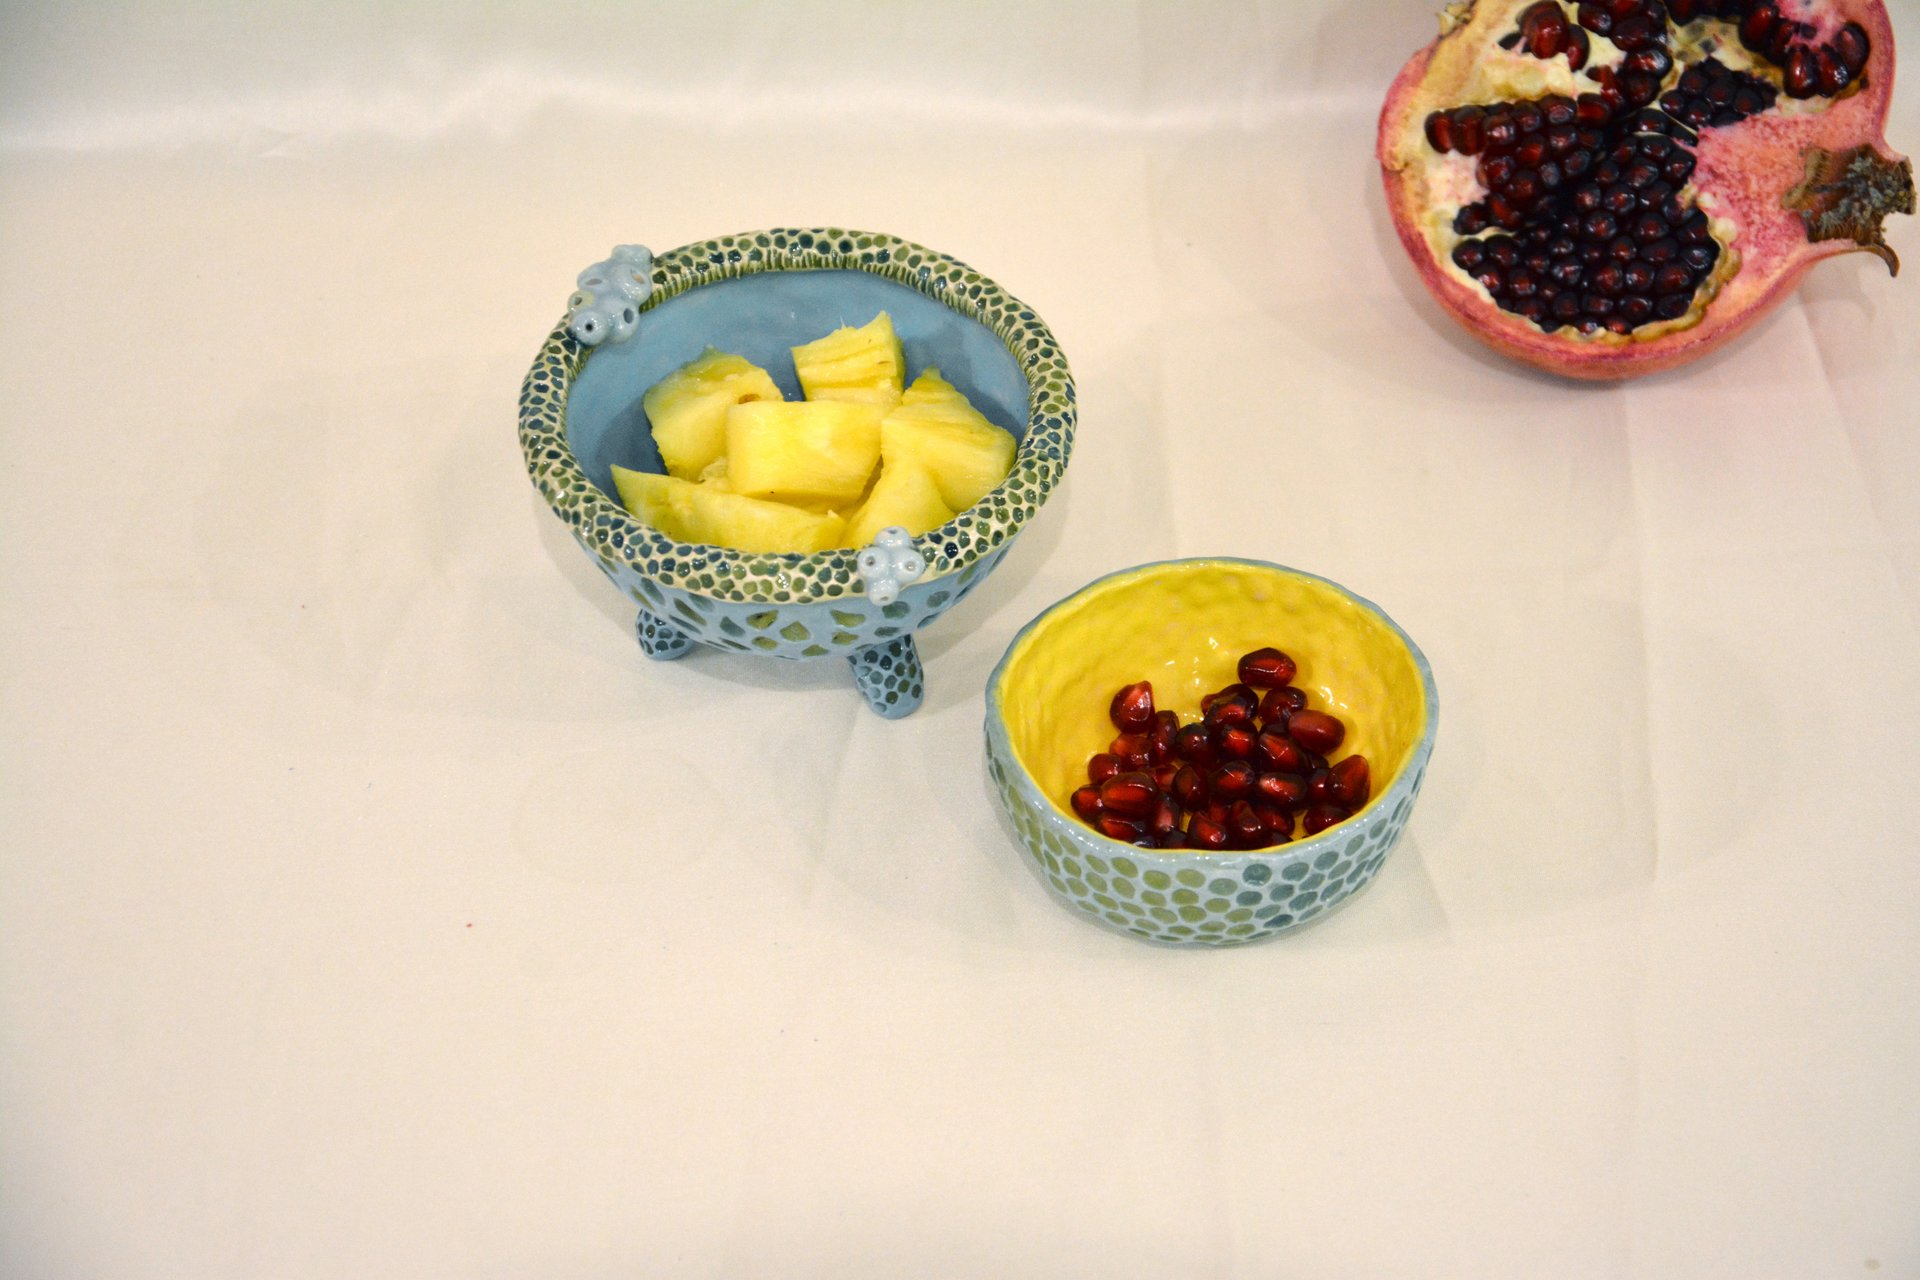 Yellow-blue with textured dots - Pialy and sauceboats, height - 3.5 cm, diameter - 8.5 cm, photo 3 of 3.